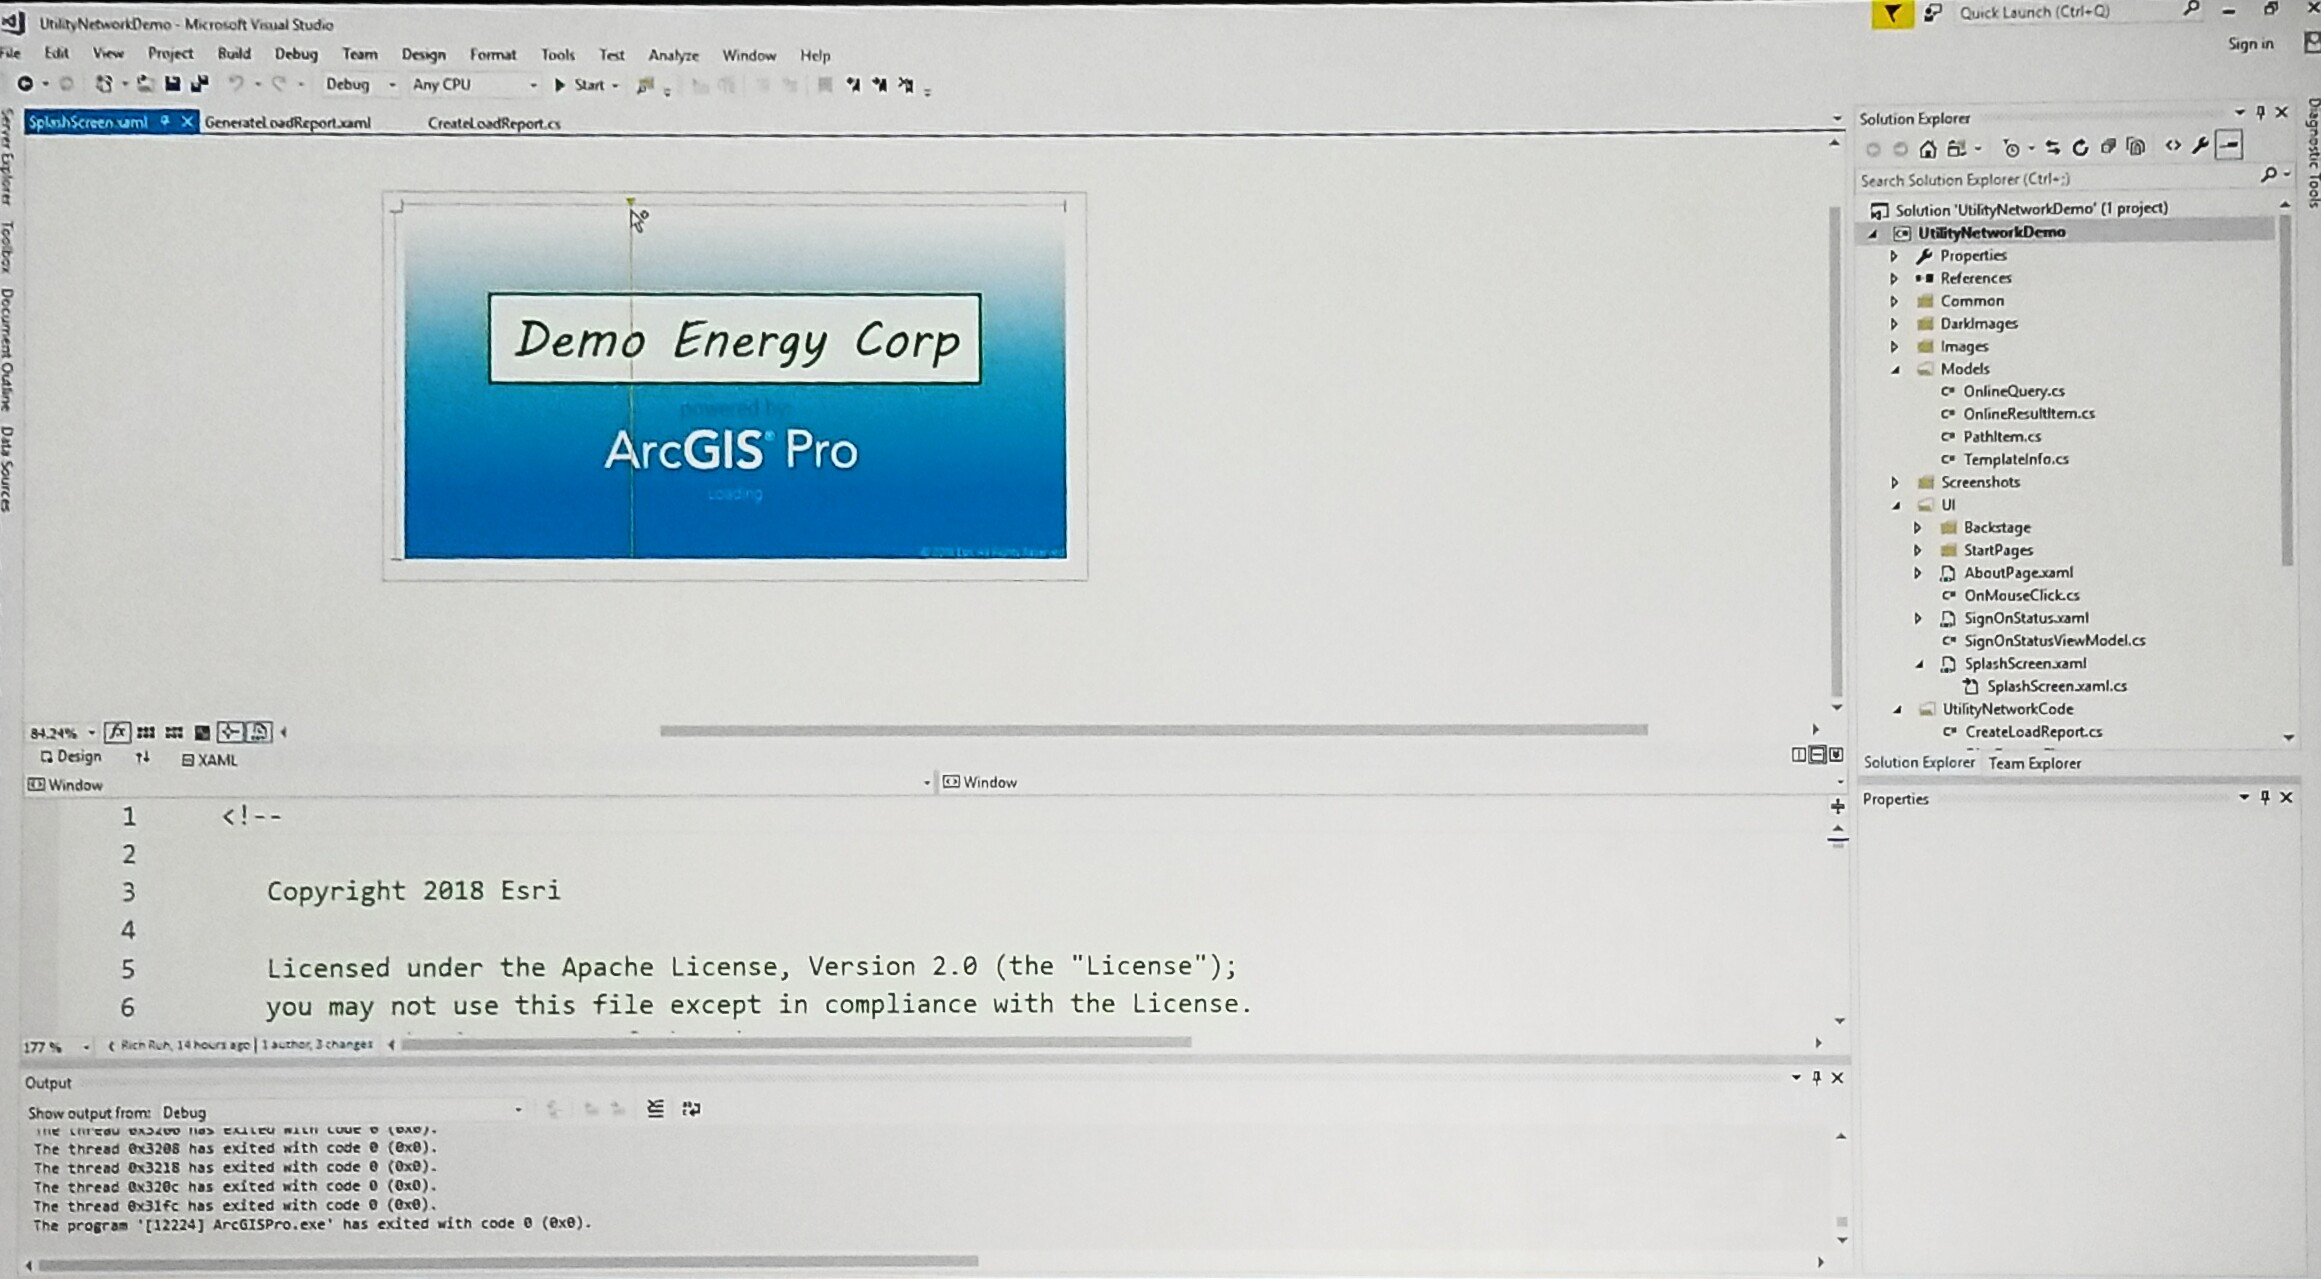 Demo of Utility in ArcGIS Pro